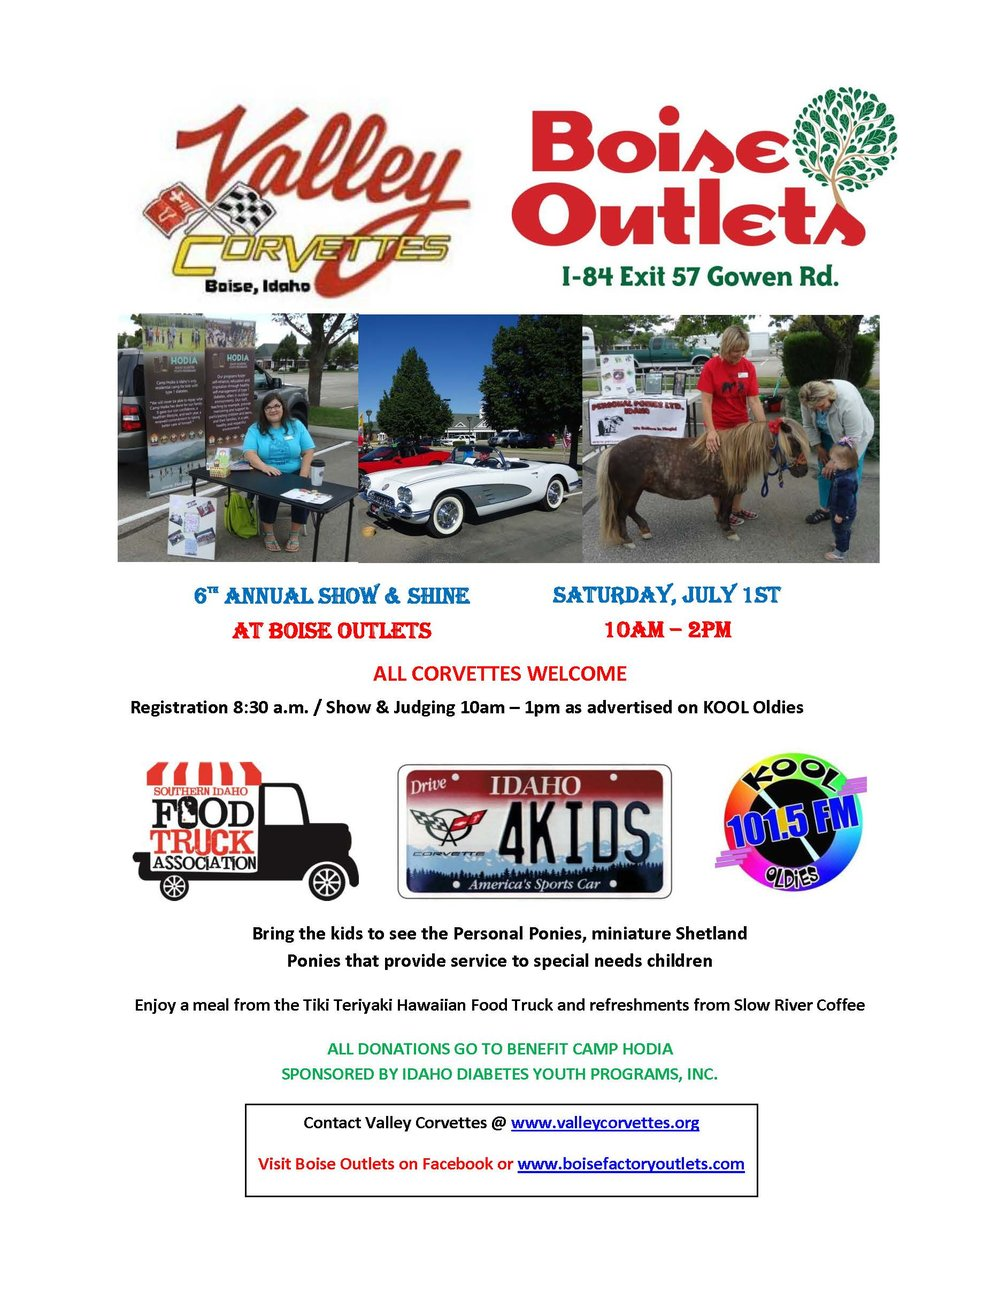 2017 Valley Corvettes Show  Shine Flyer RevisedFinalV (002).jpg